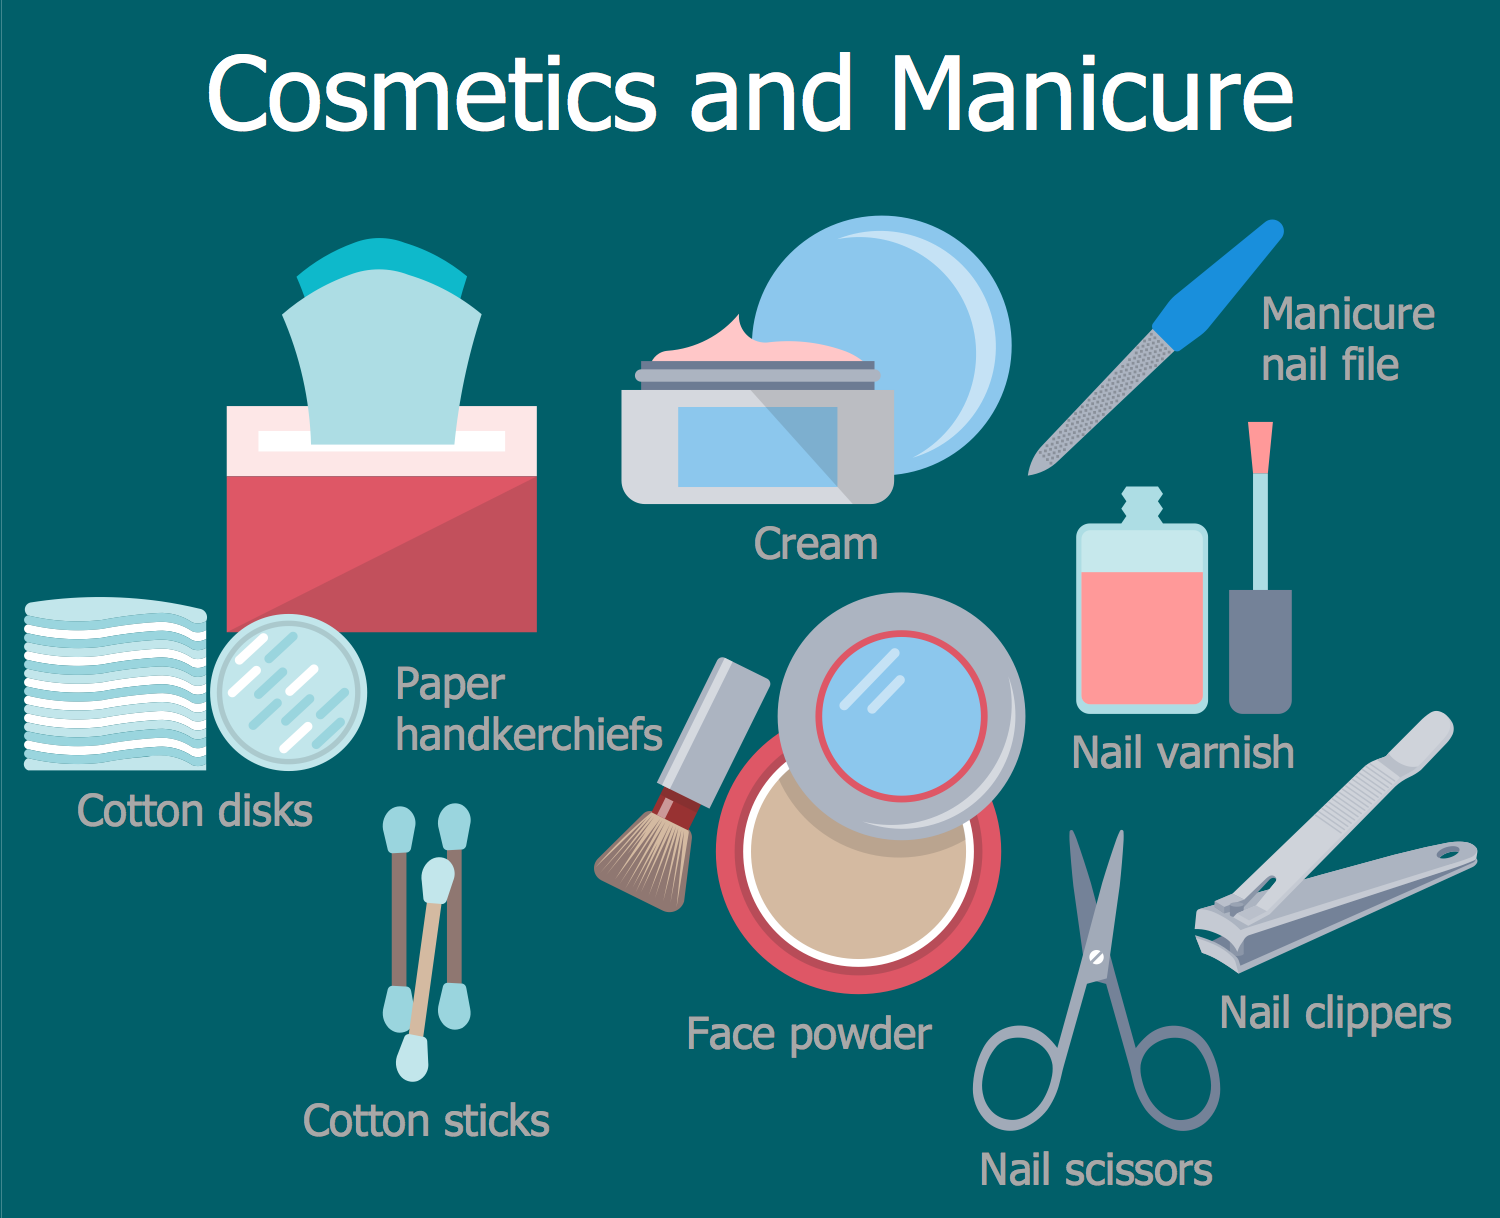 Pharmacy Pictures - Cosmetics and Manicure